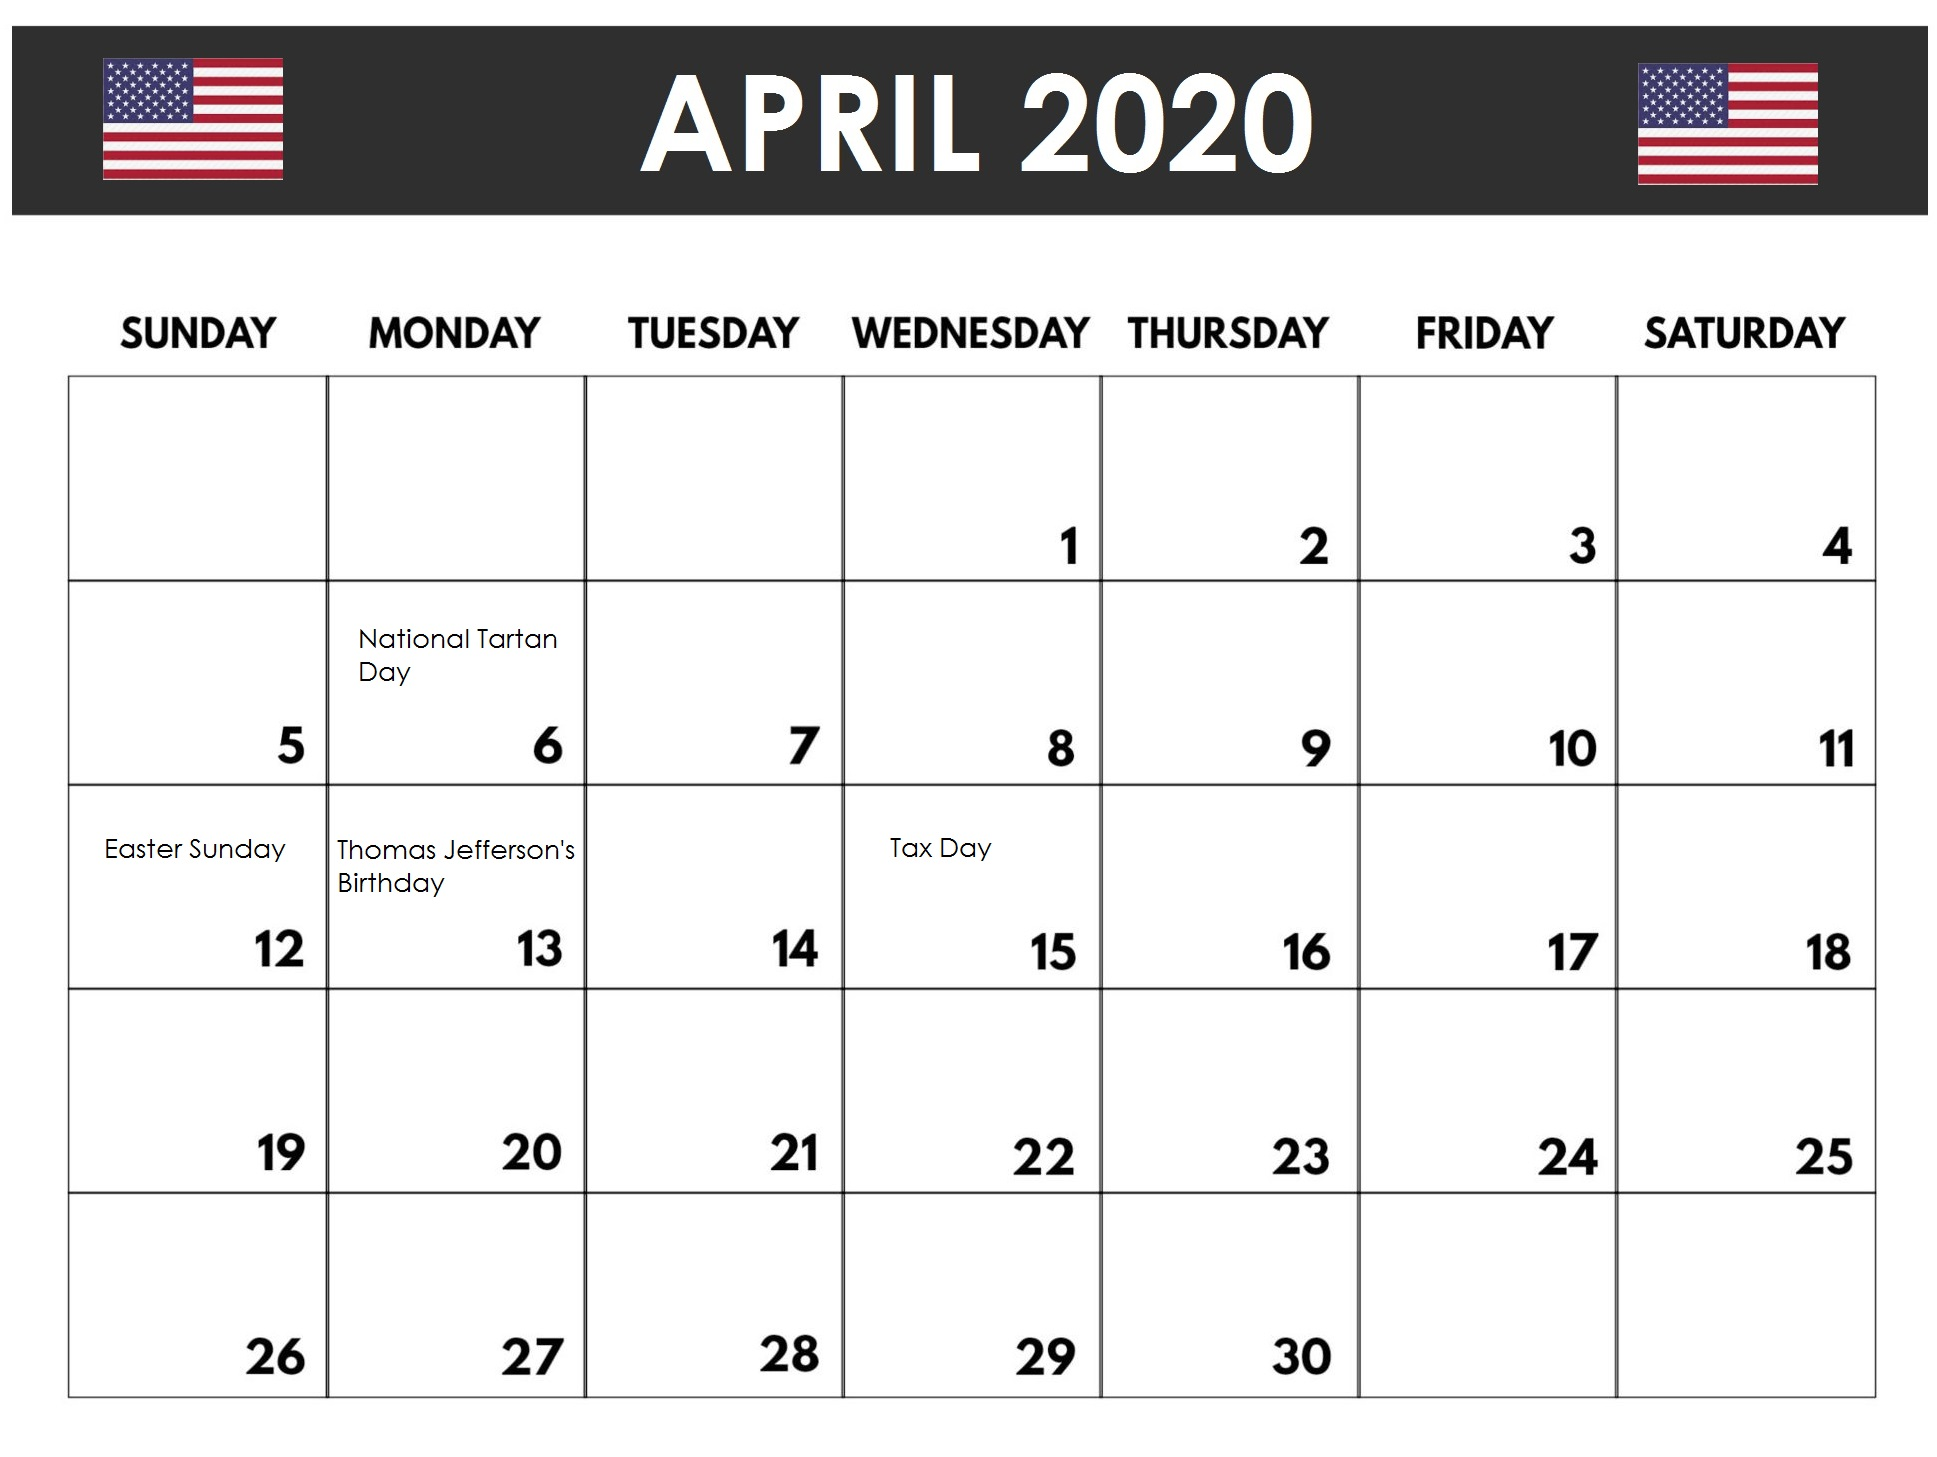 april 2020 holidays calendar usa